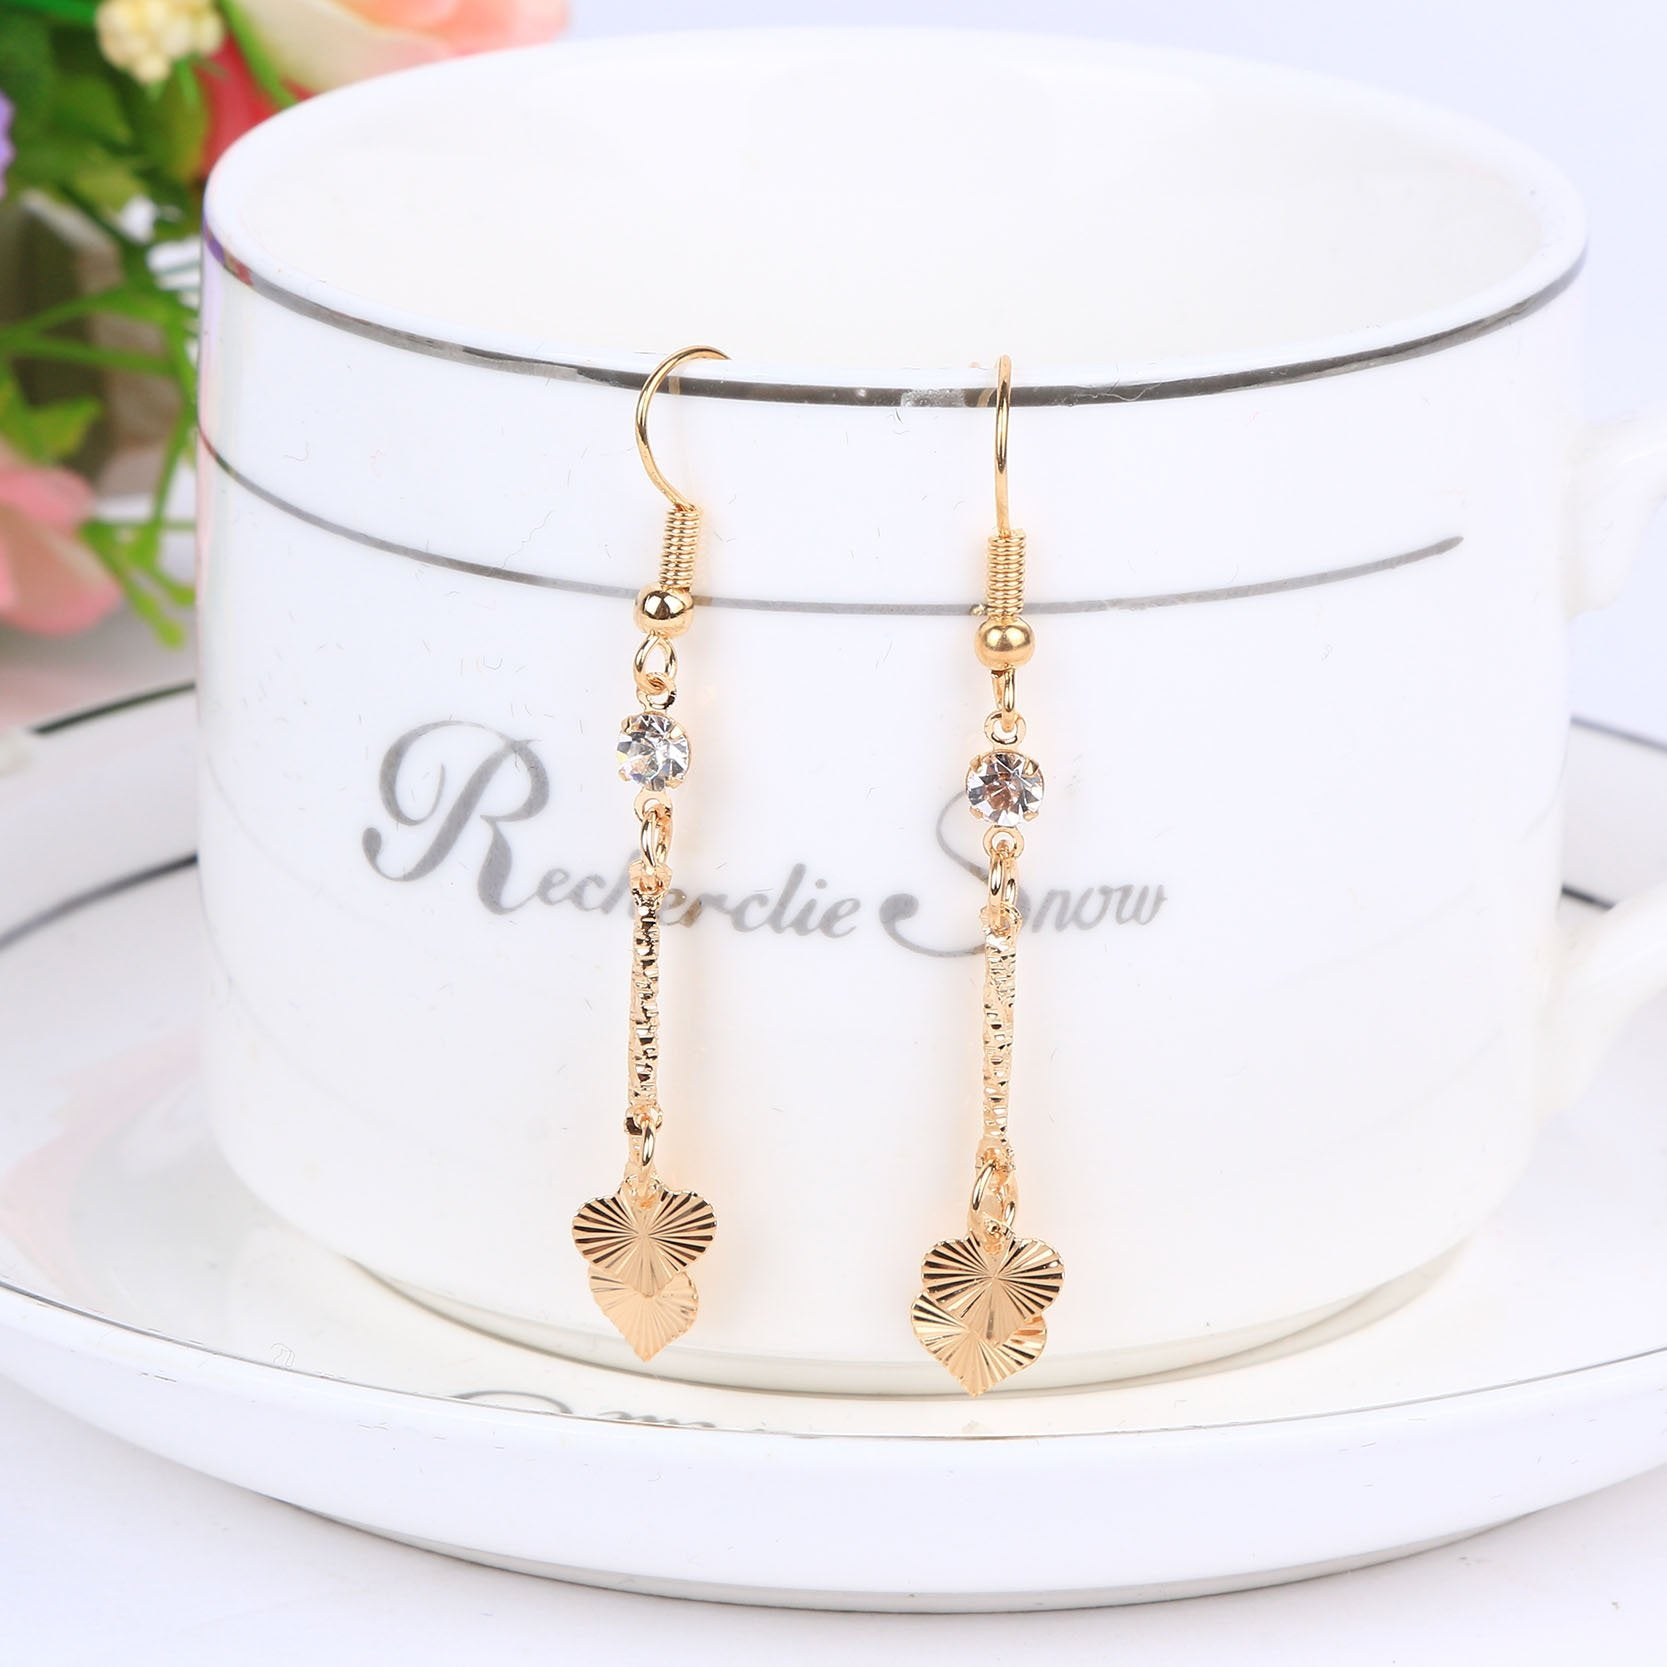 Jewelry Sets Crystal Love Statement Necklace & Drop Earrings for Women